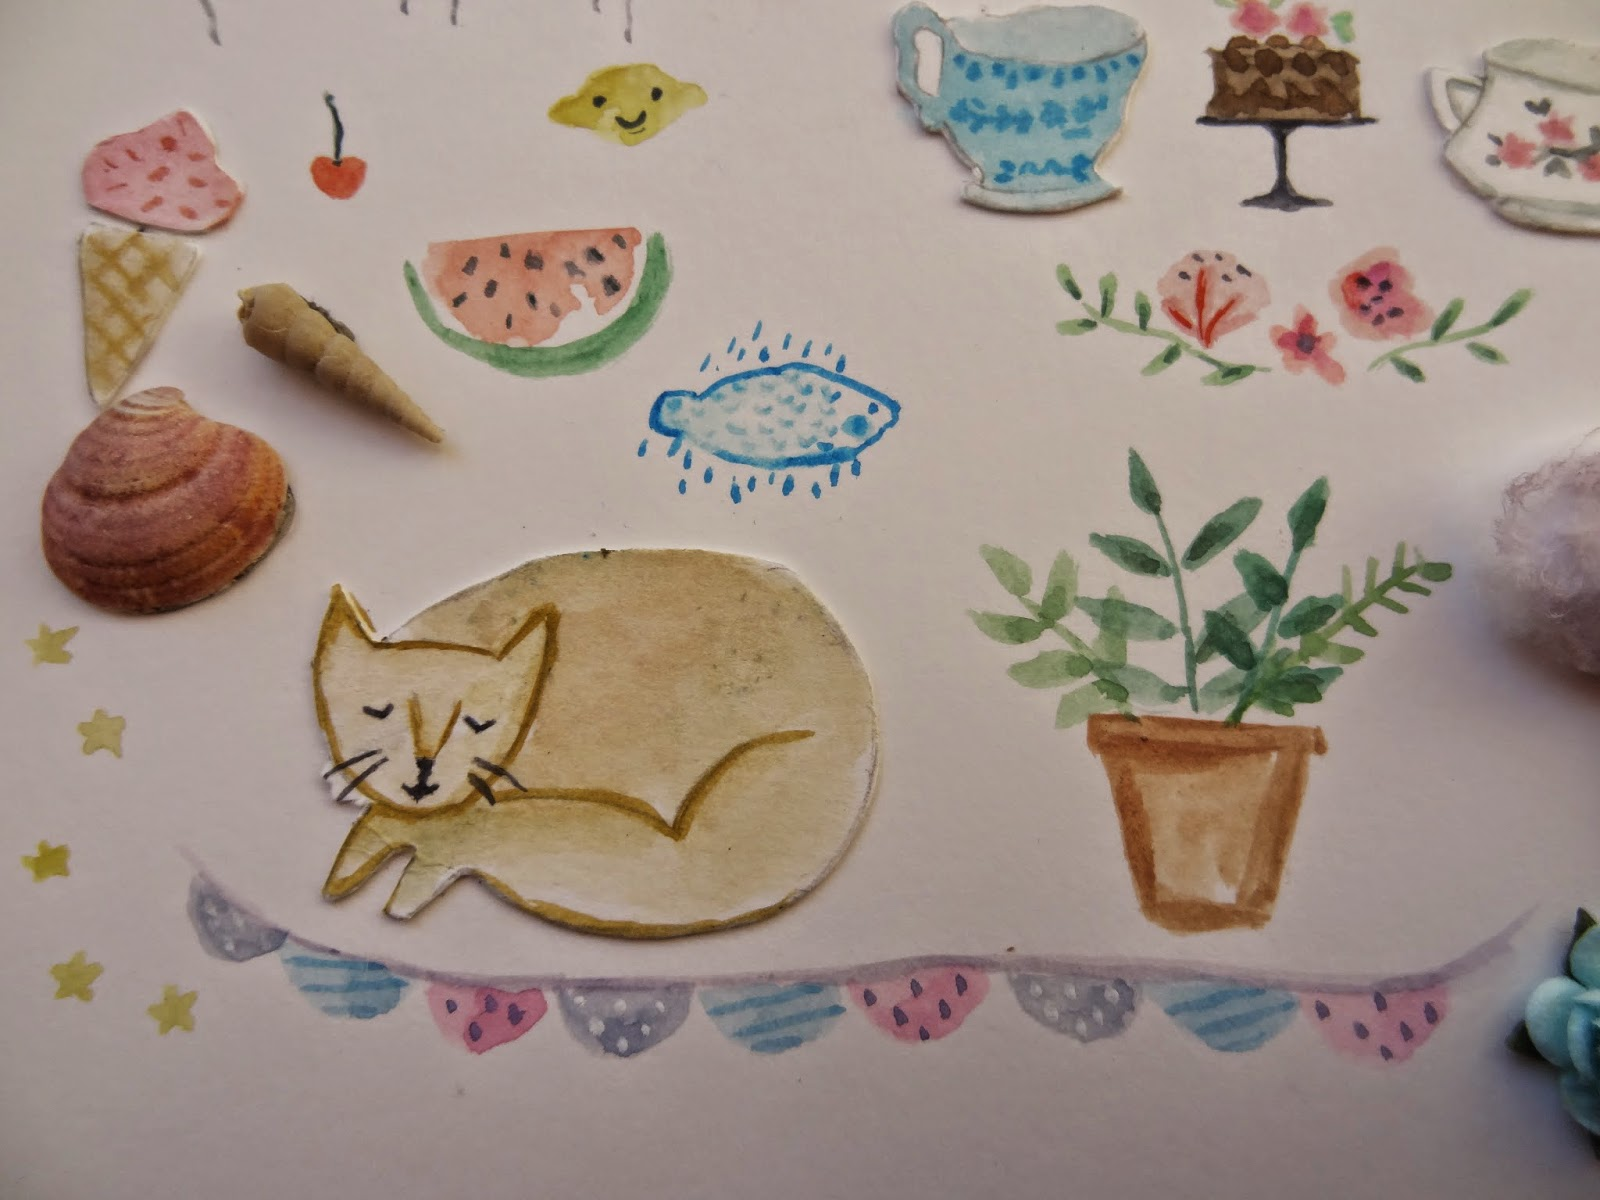 garland plants plantas lemon smile cats sweet naif craft manualidades ilustradora cherry ice cream  cup tea